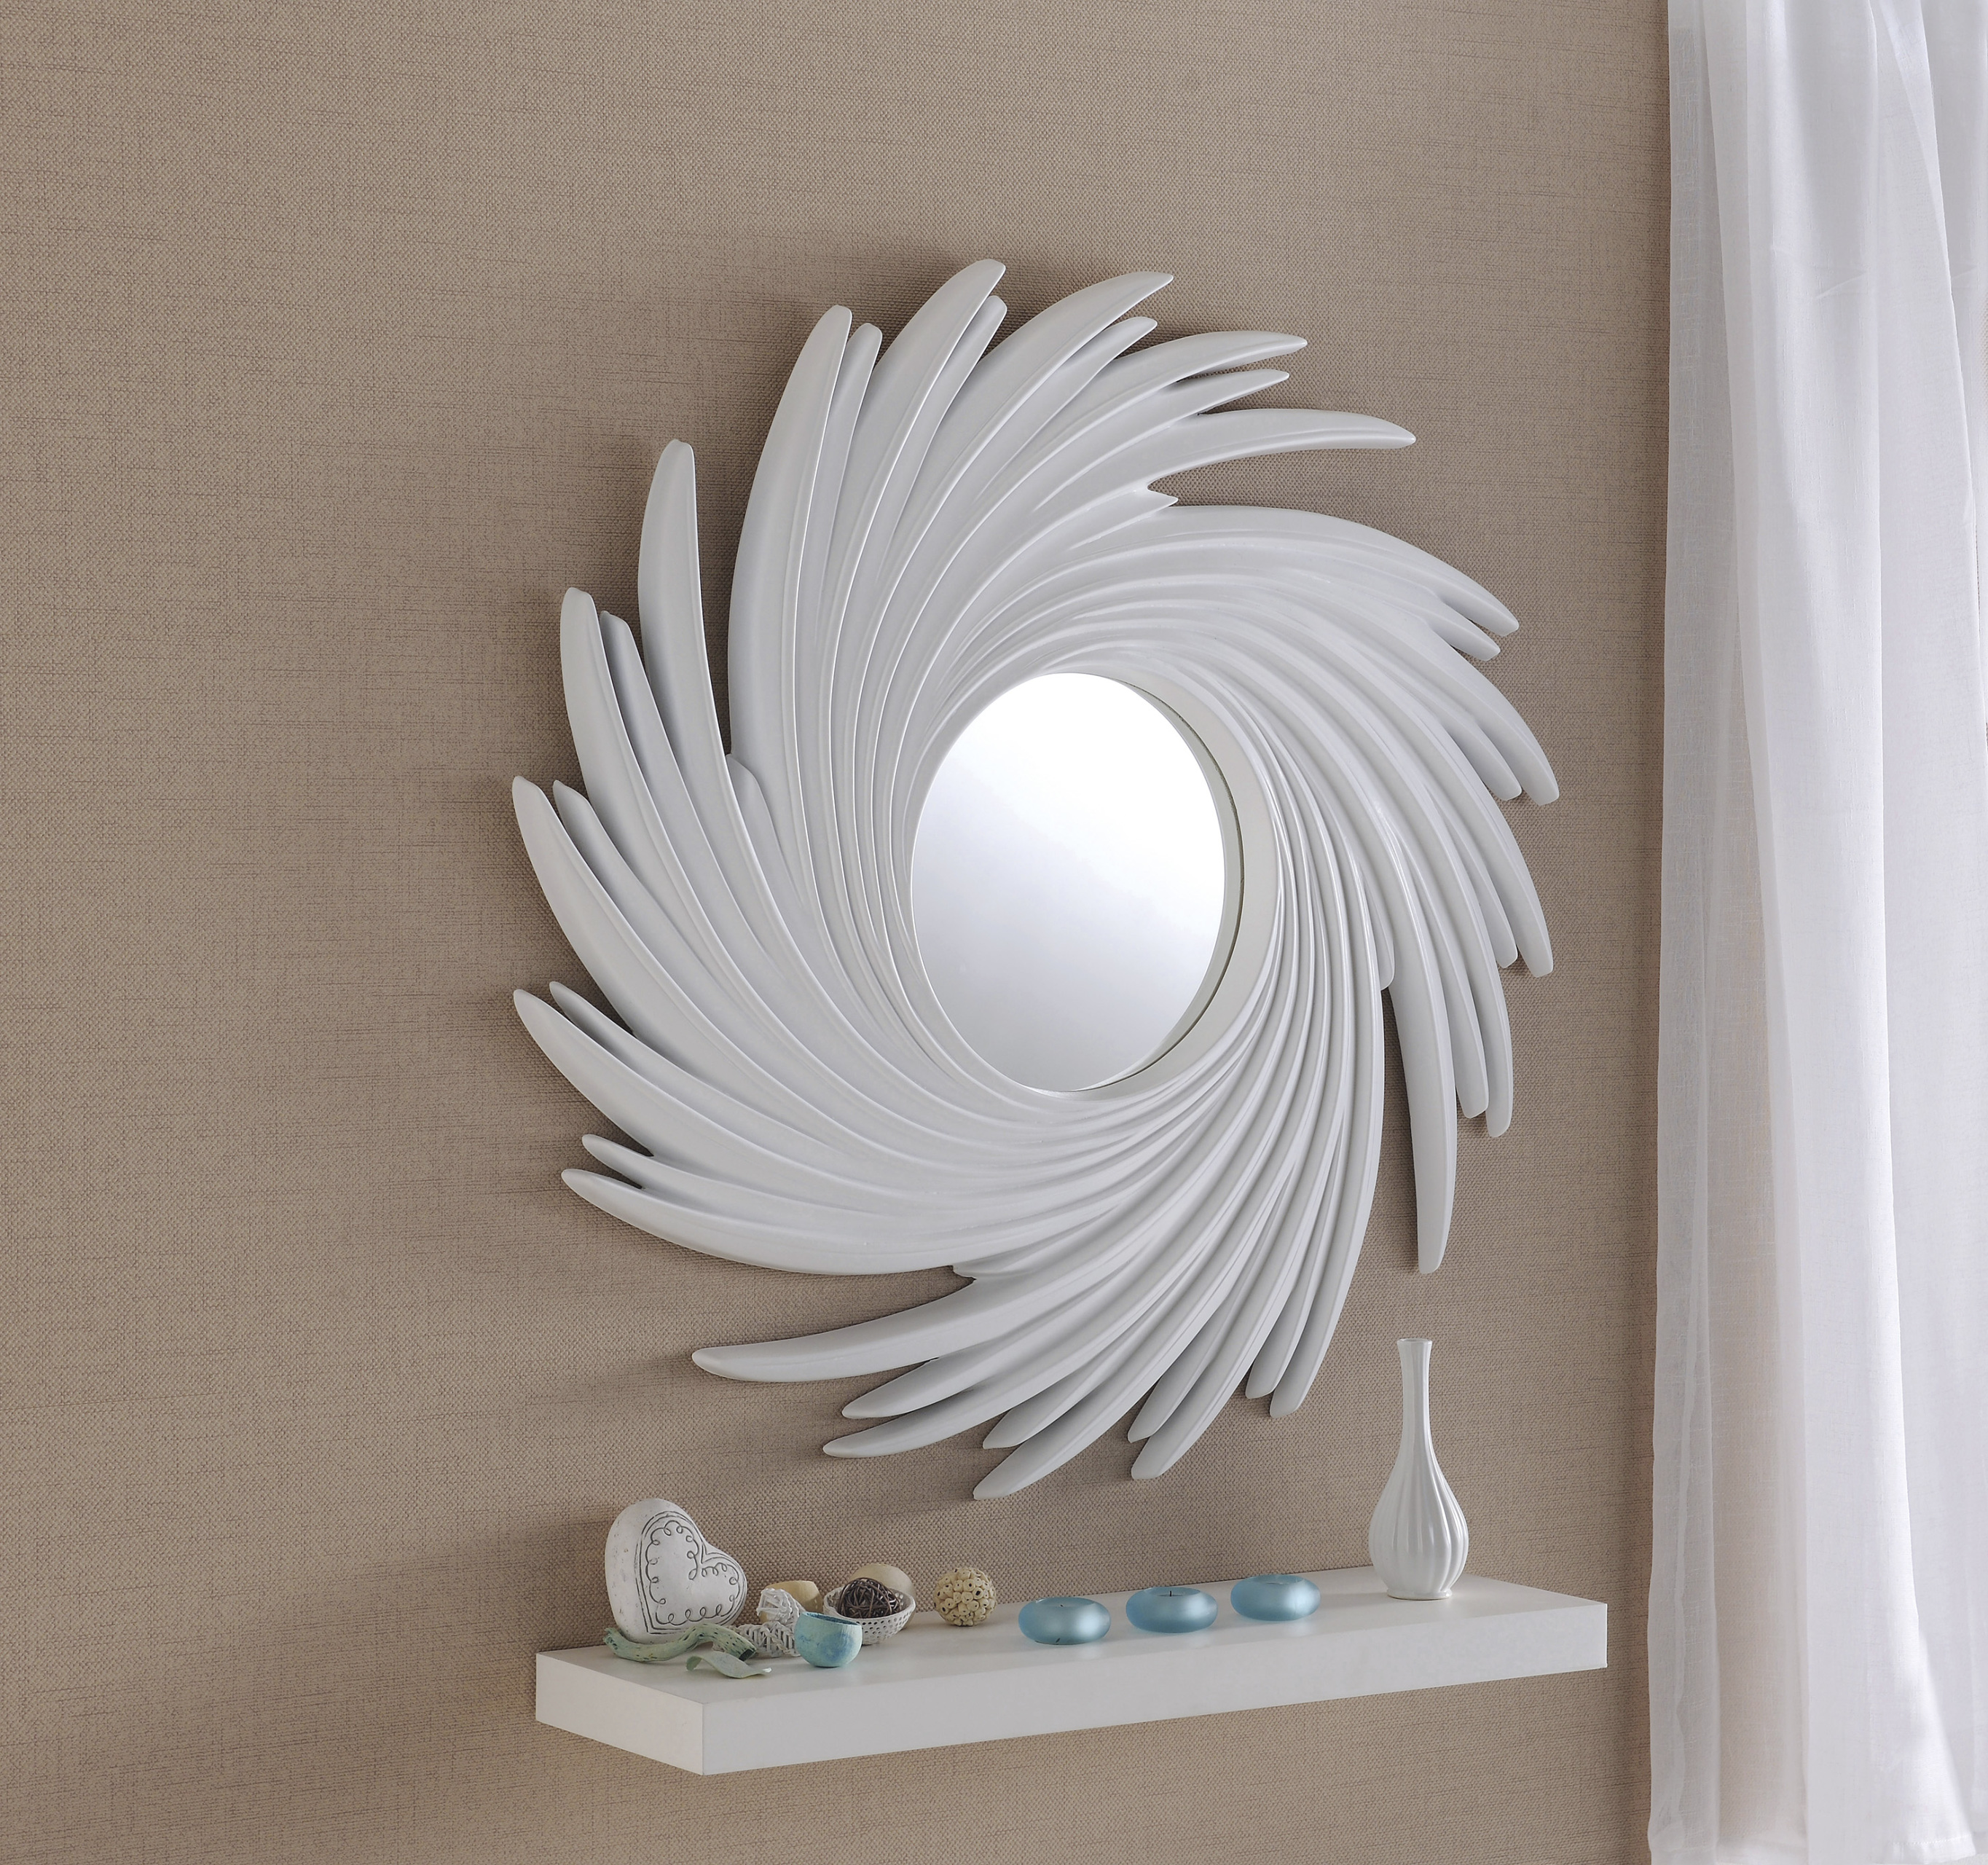 Art 295 Silver Mirror With Swirl Round Contemporary Sun